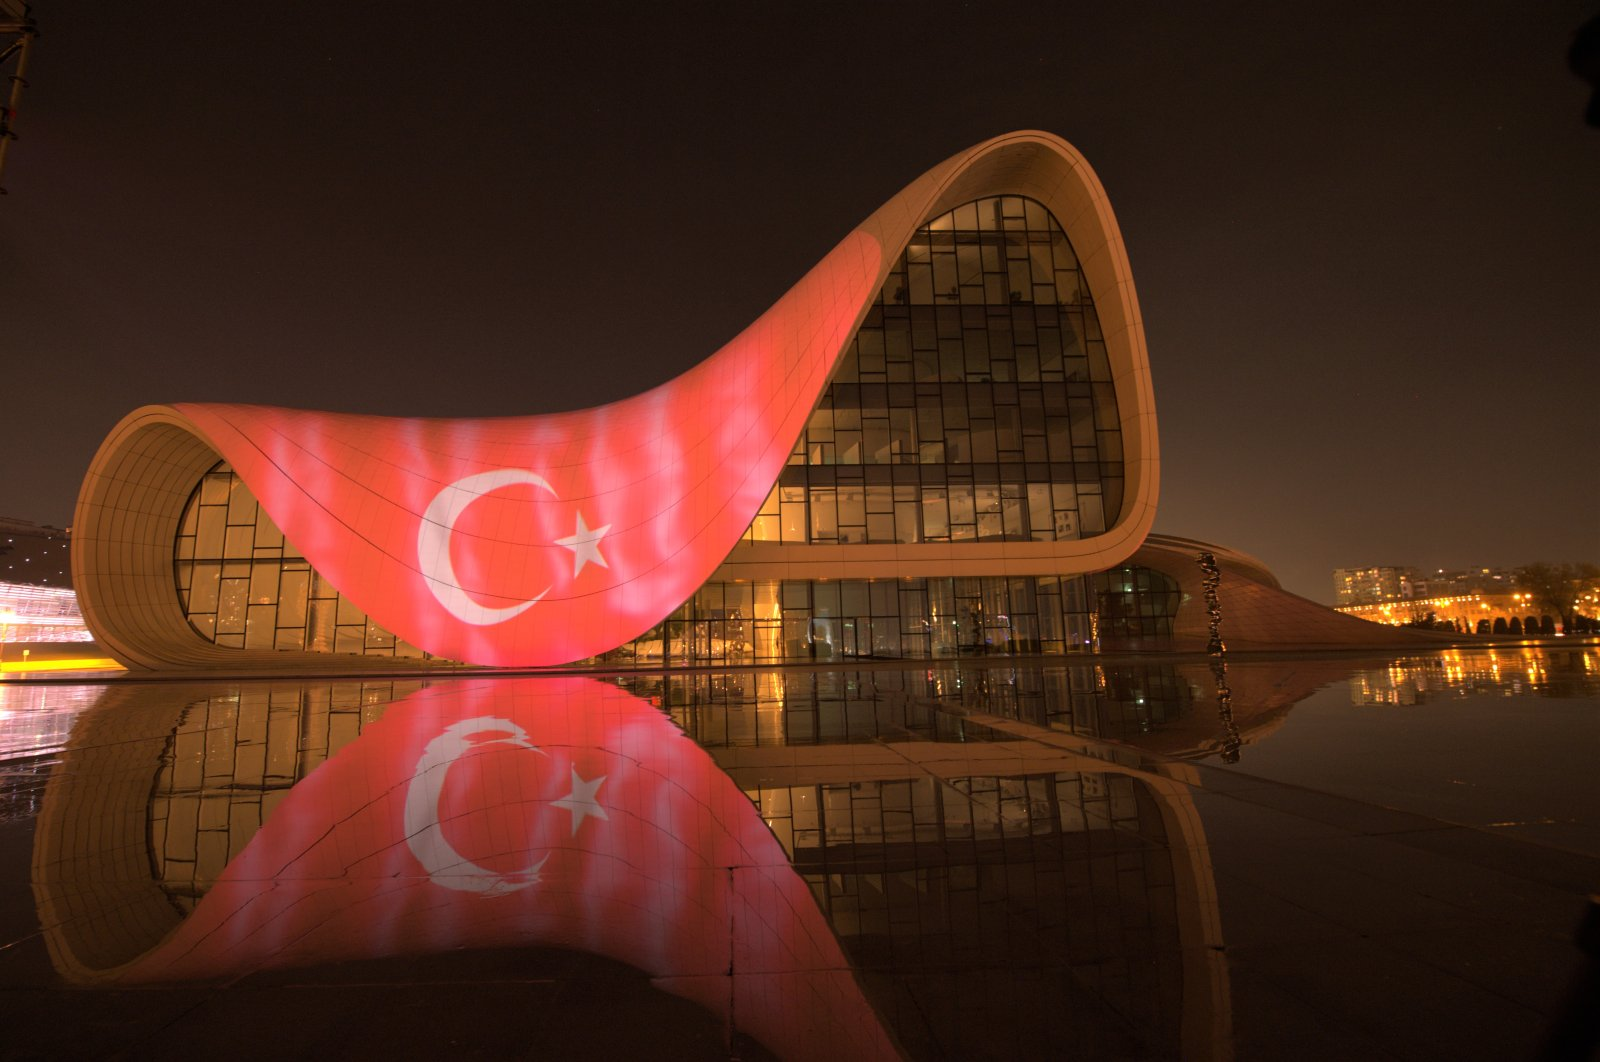 Azerbaijan displayed a digital version of the Turkish flag at the Heydar Aliyev Cultural Center, an iconic symbol in the capital Baku, in a show of solidarity amid the coronavirus pandemic, April 11, 2020. (AA Photo)